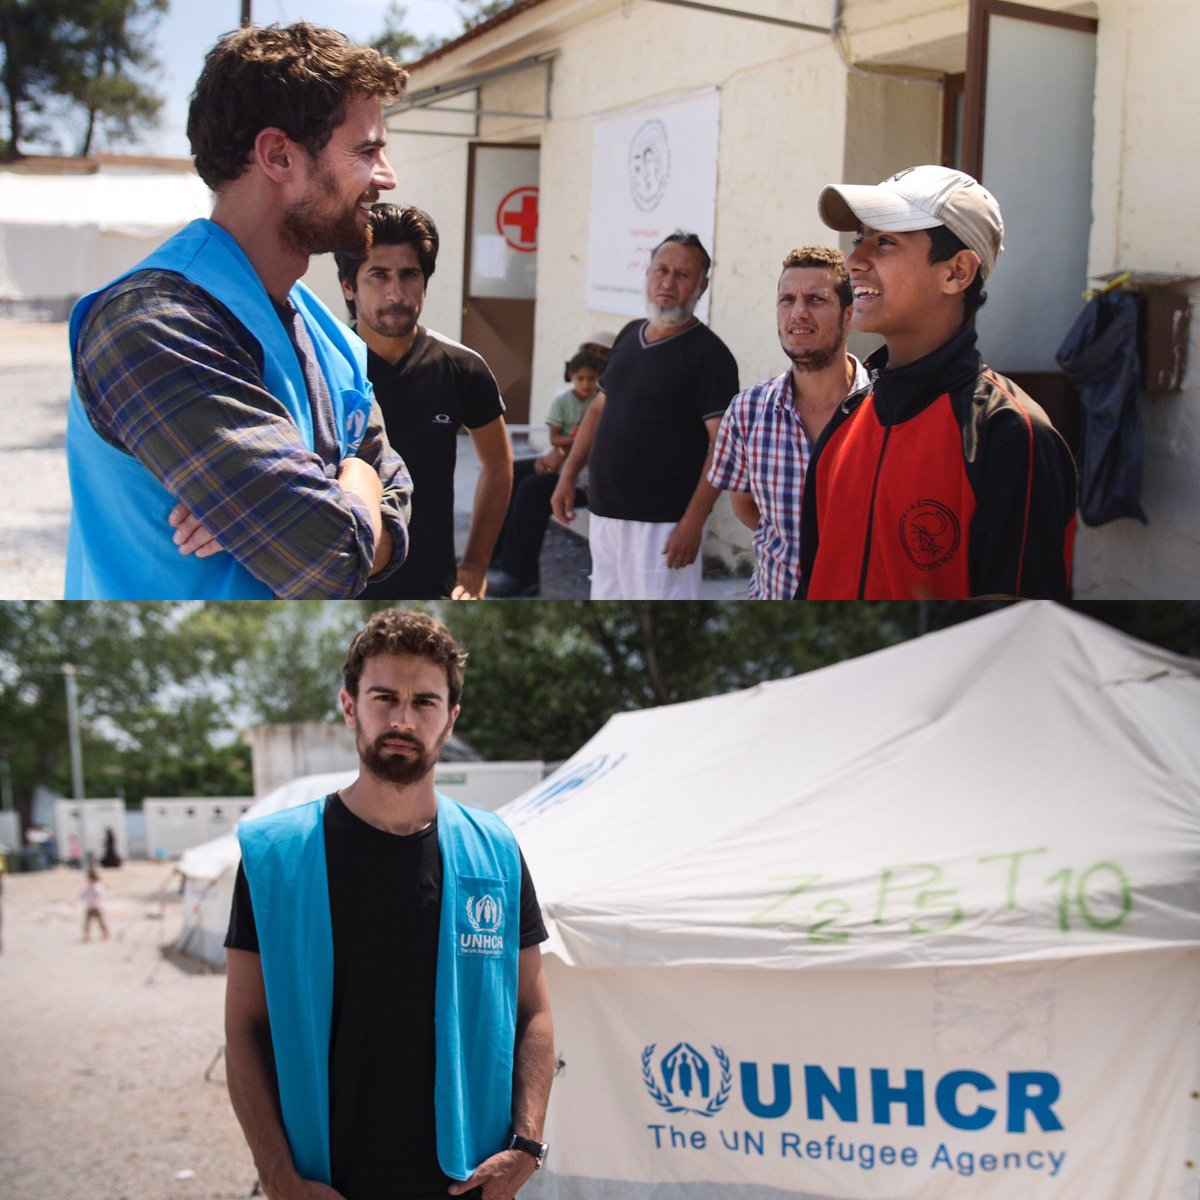 #UNHCR High Profile Supporter Theo James travelled to Greece ahead of #WorldRefugeeDay. #WithRefugees #TheoJames https://t.co/9C1I7675cP